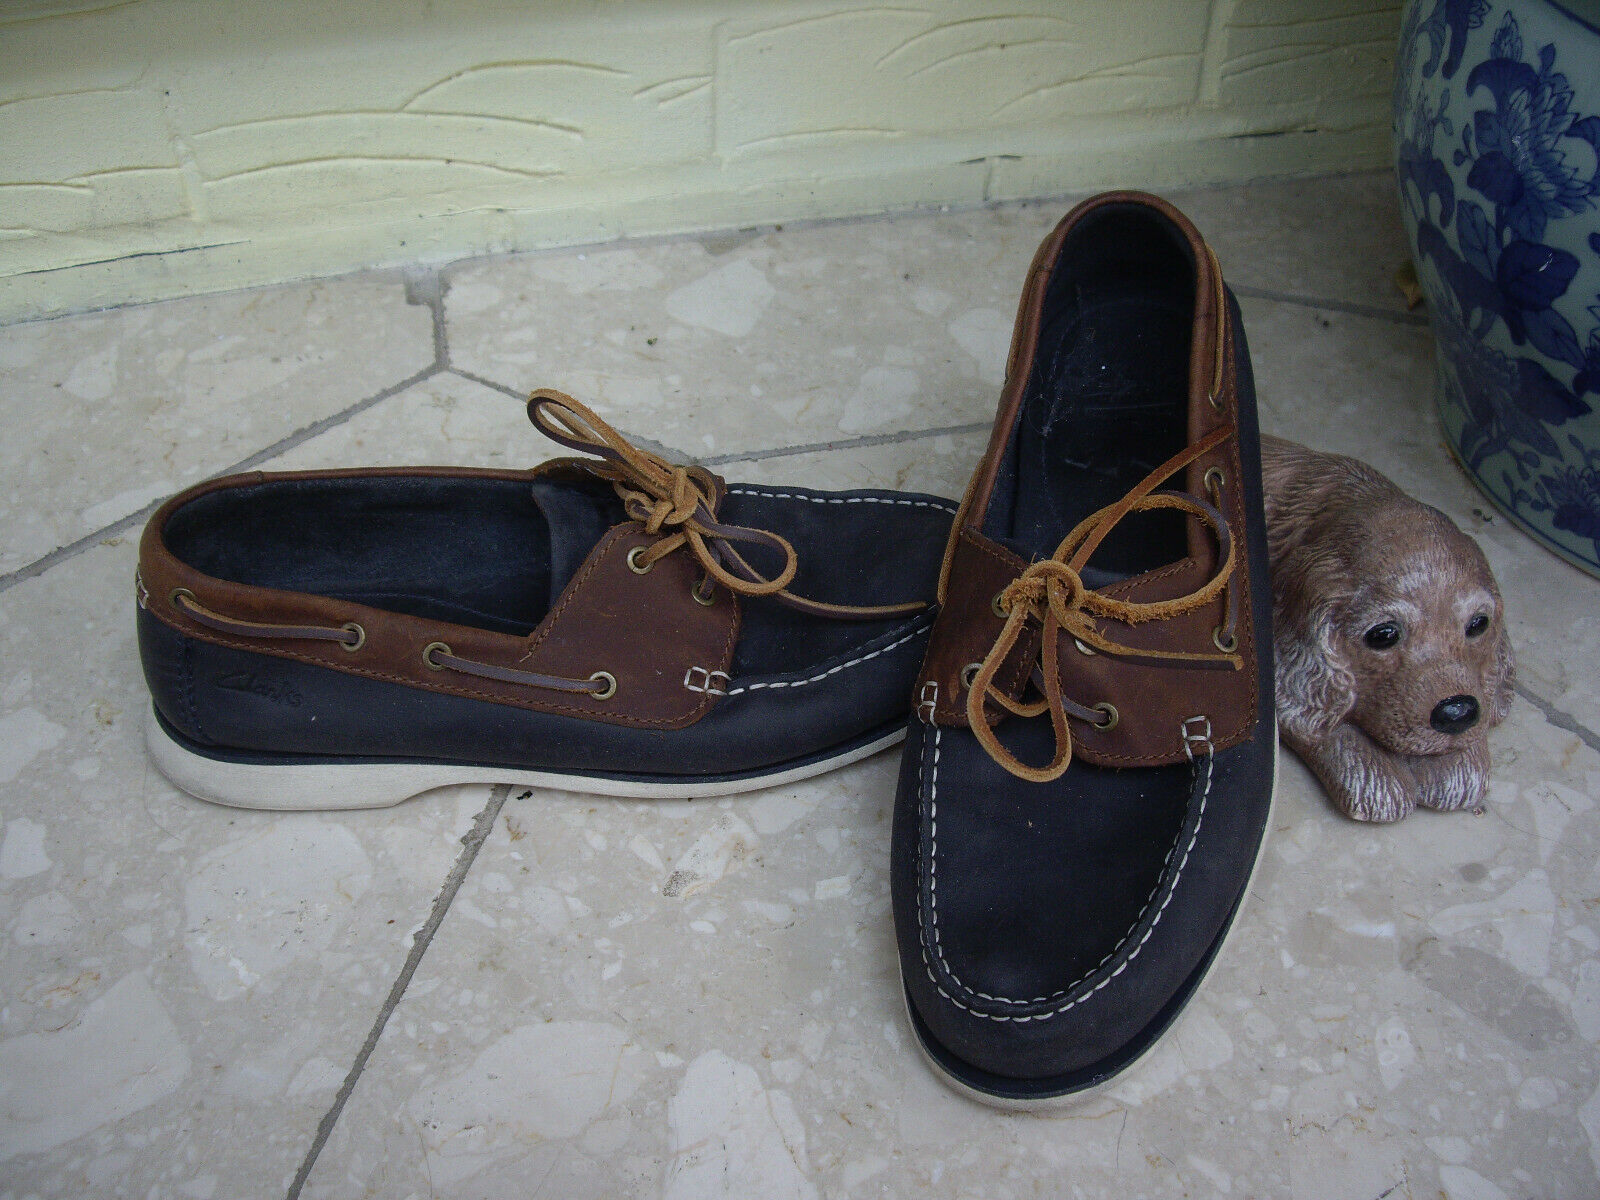 CLARKS NAVY BLUE AND BROWN LEATHER MOCCASIN SHOES CLARKS BOAT SHOES ~ 8